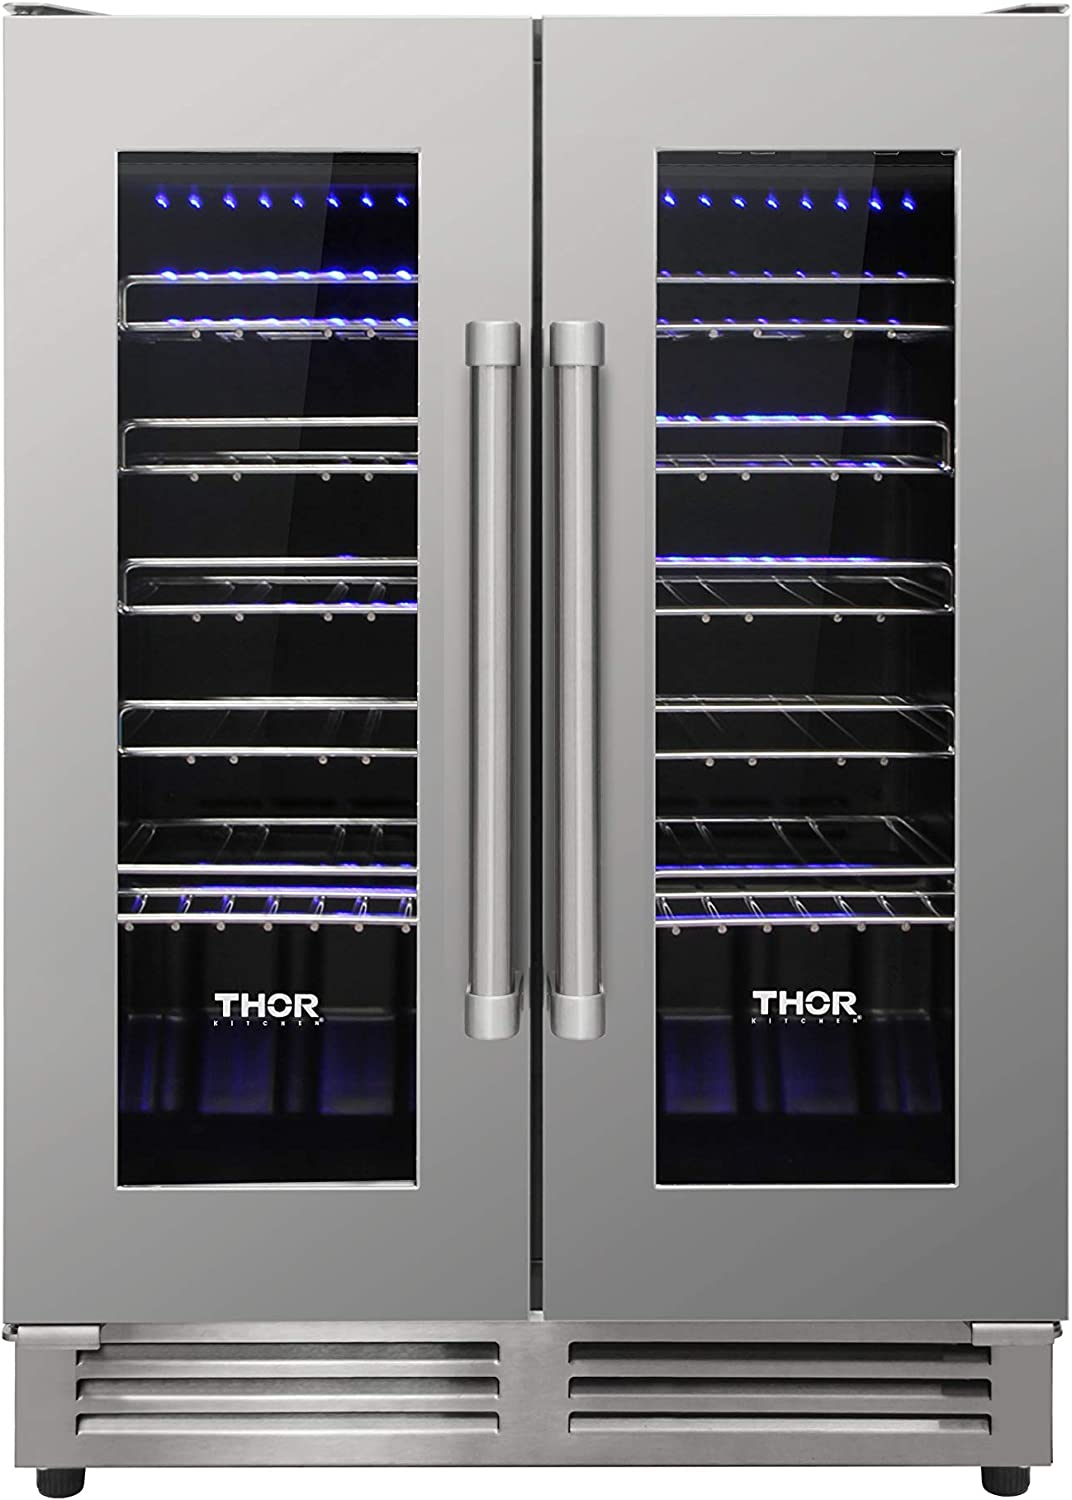 Thor Kitchen 42 Bottles Wine Cooler - Dual Zone Frost Free Wine Chiller Refrigerator - Suitable for 24 inch Space Under Counter or Freestanding